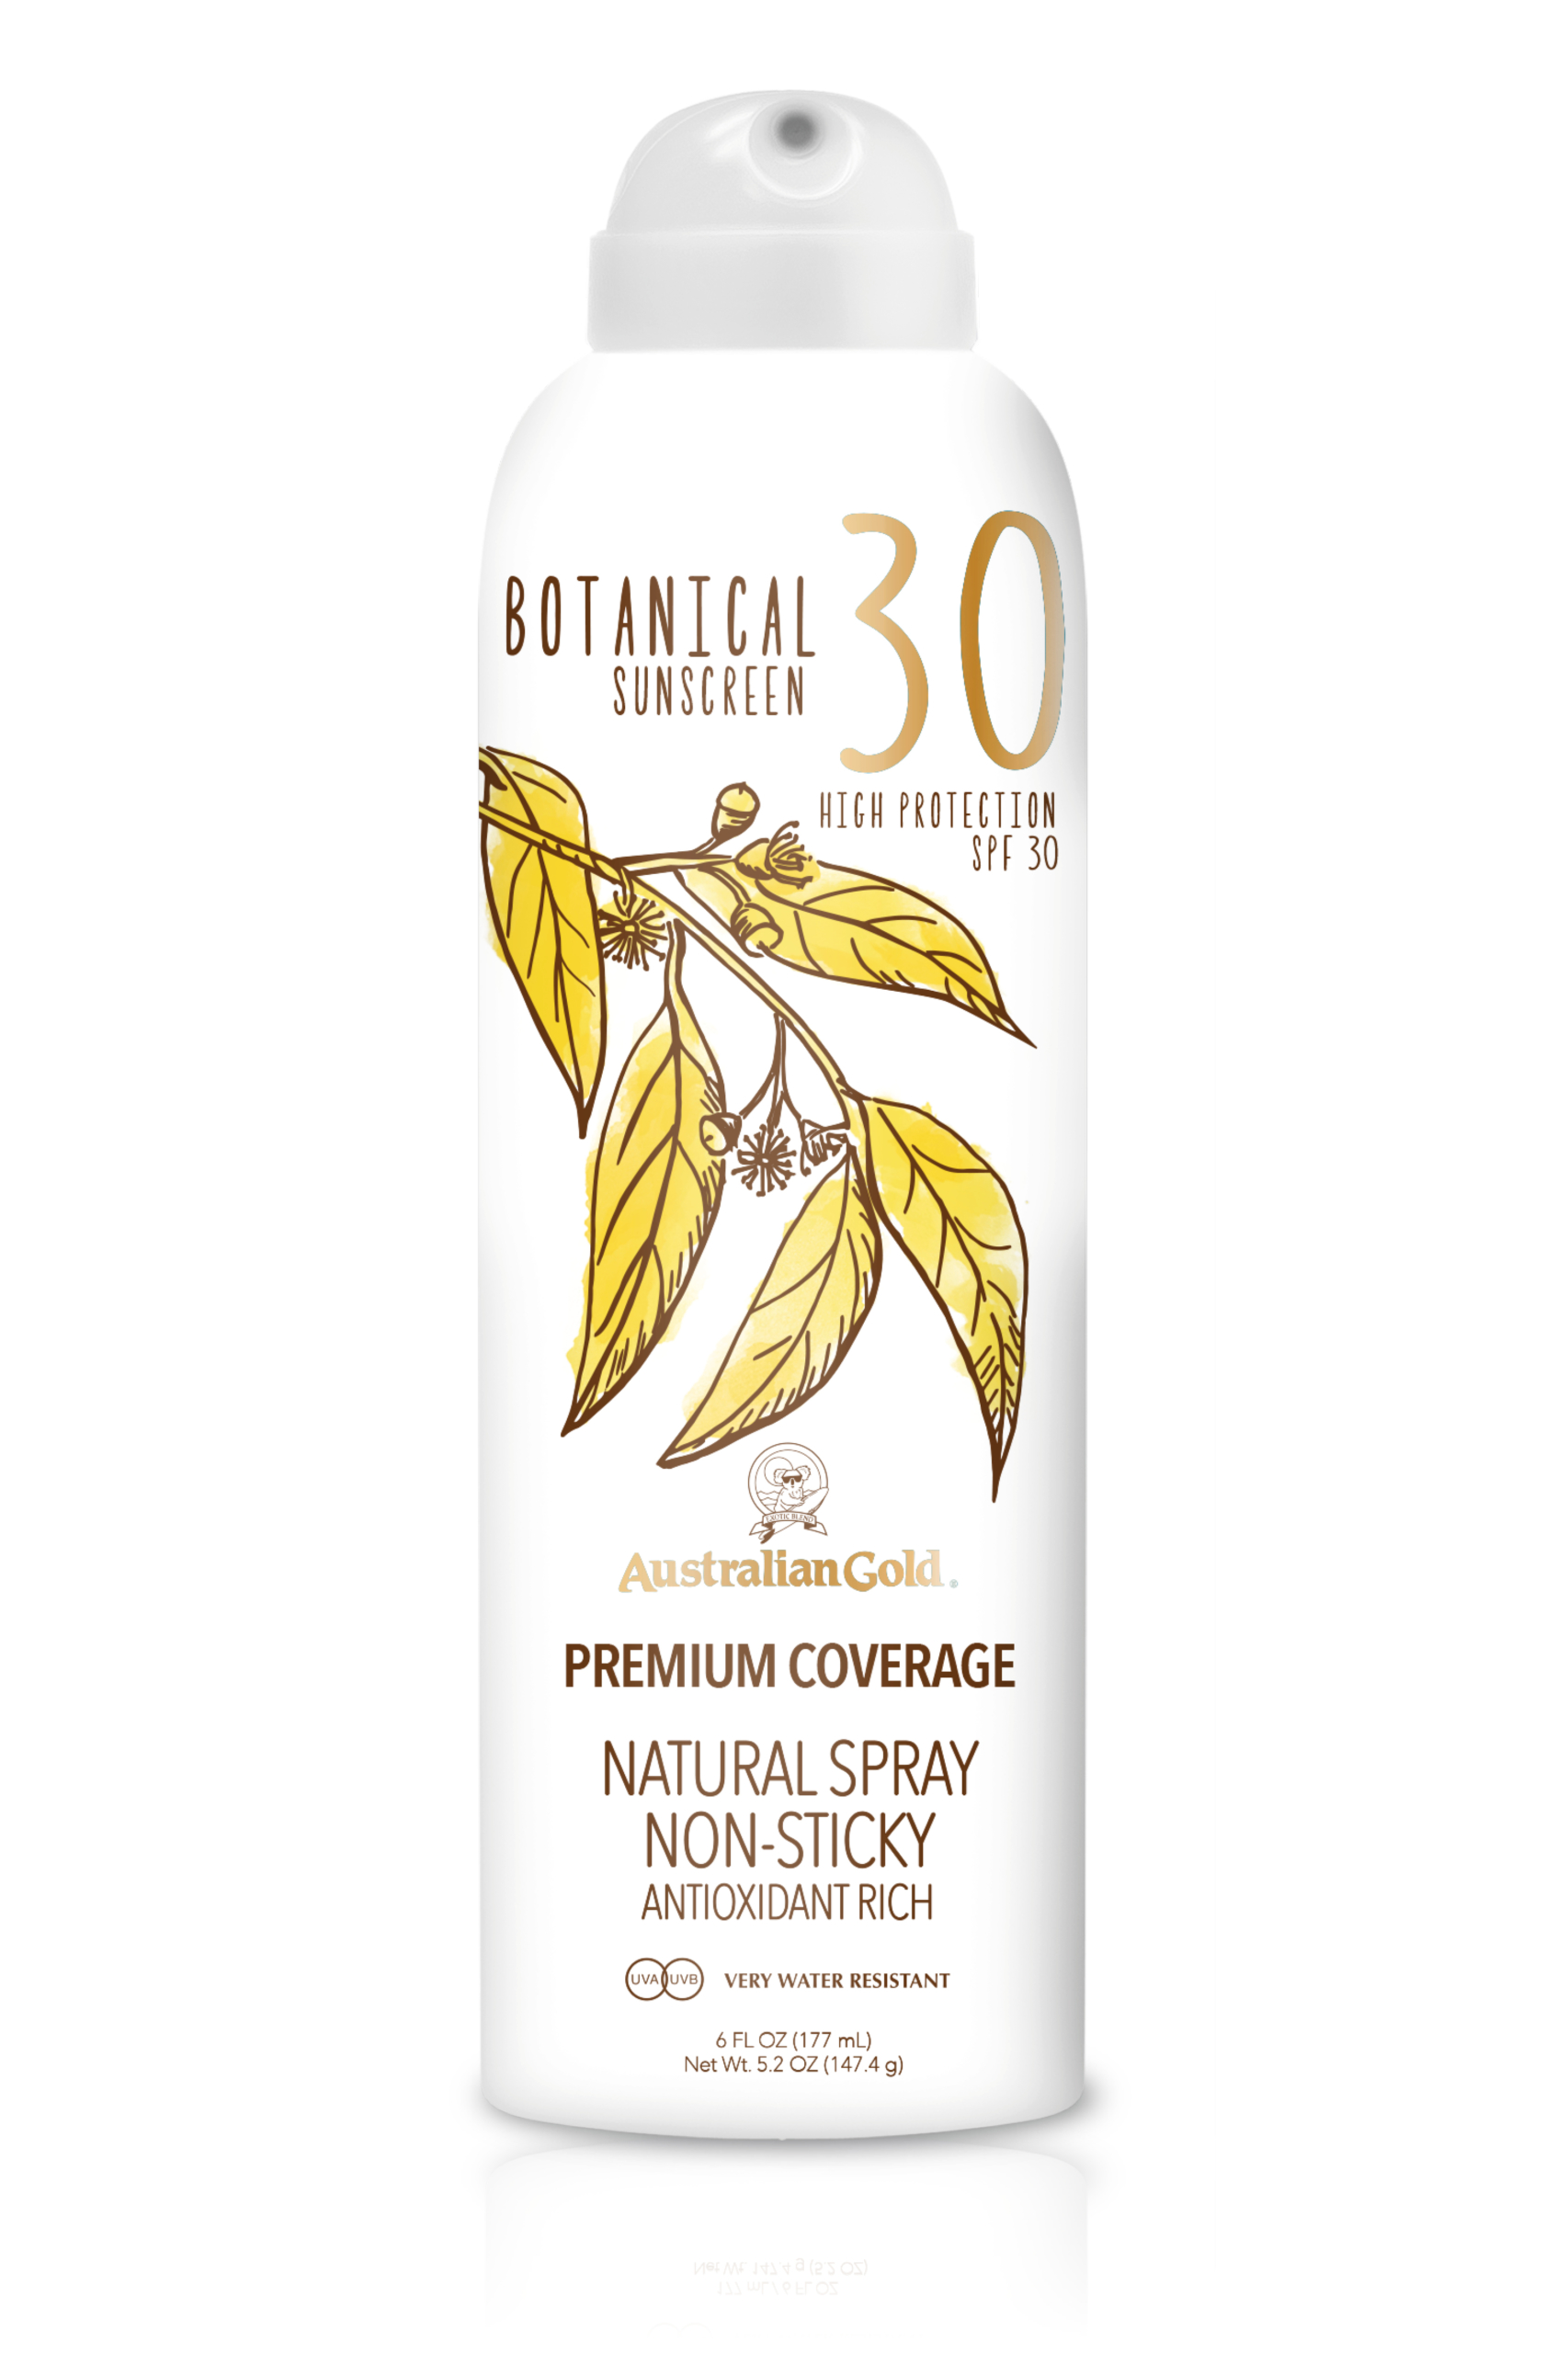 Botanical faktor 30 spray